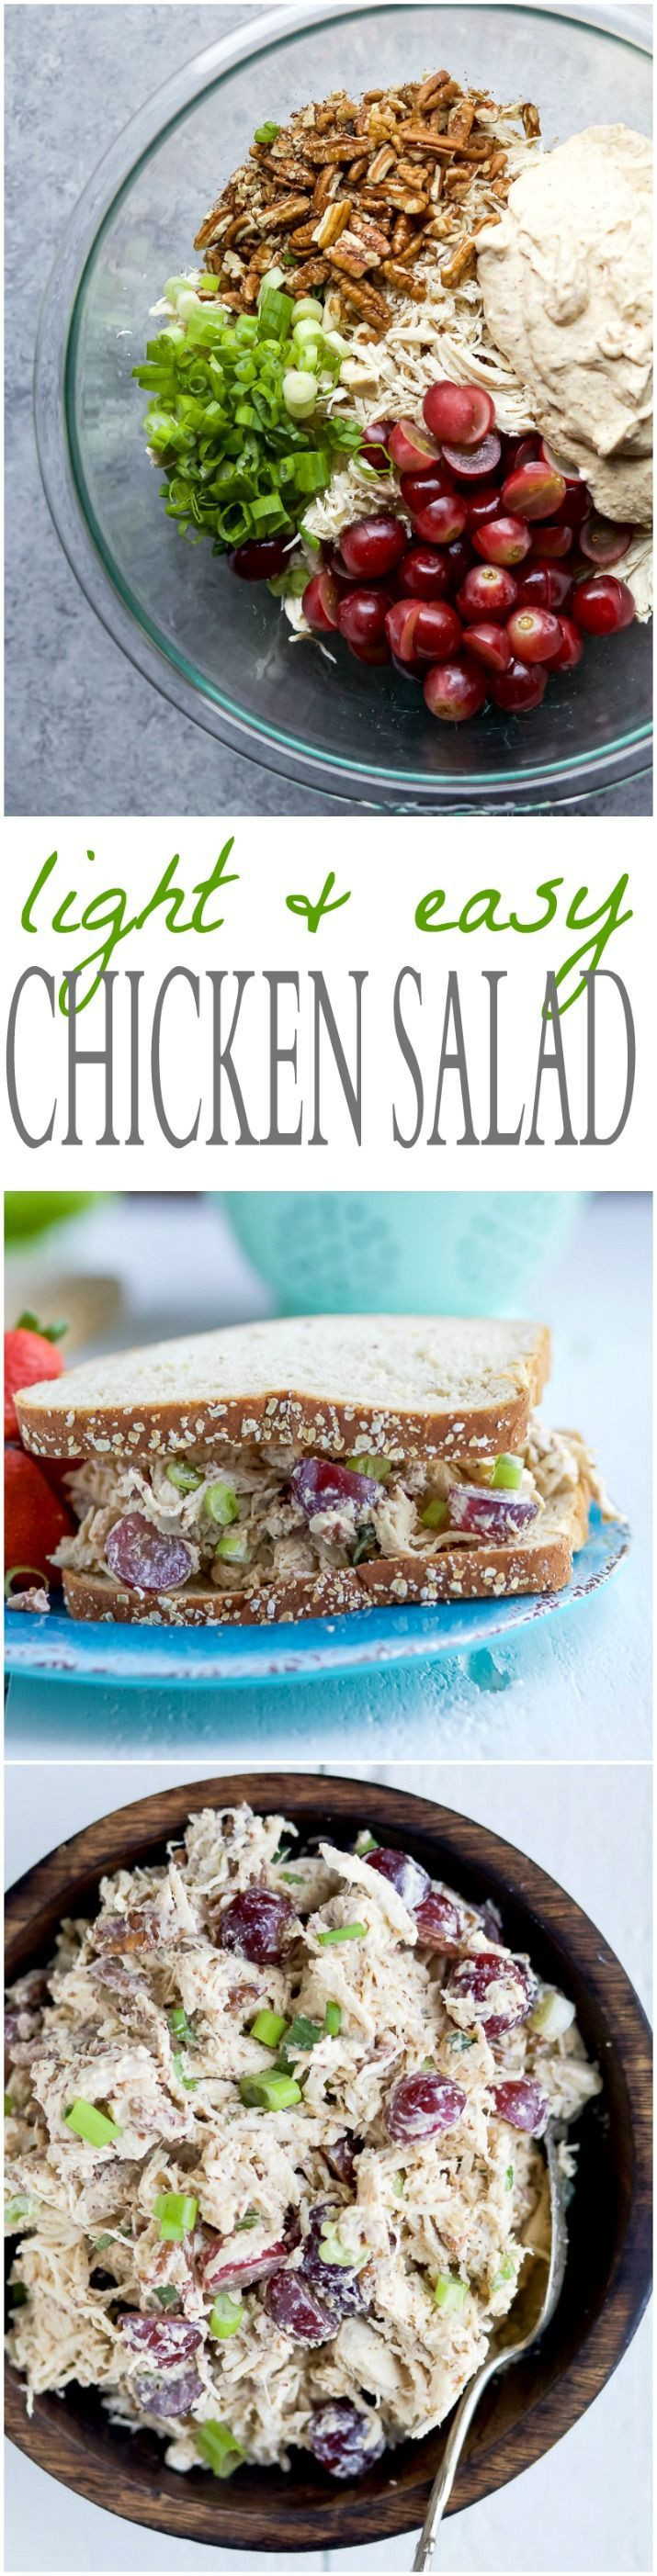 Healthy Classic Chicken Salad